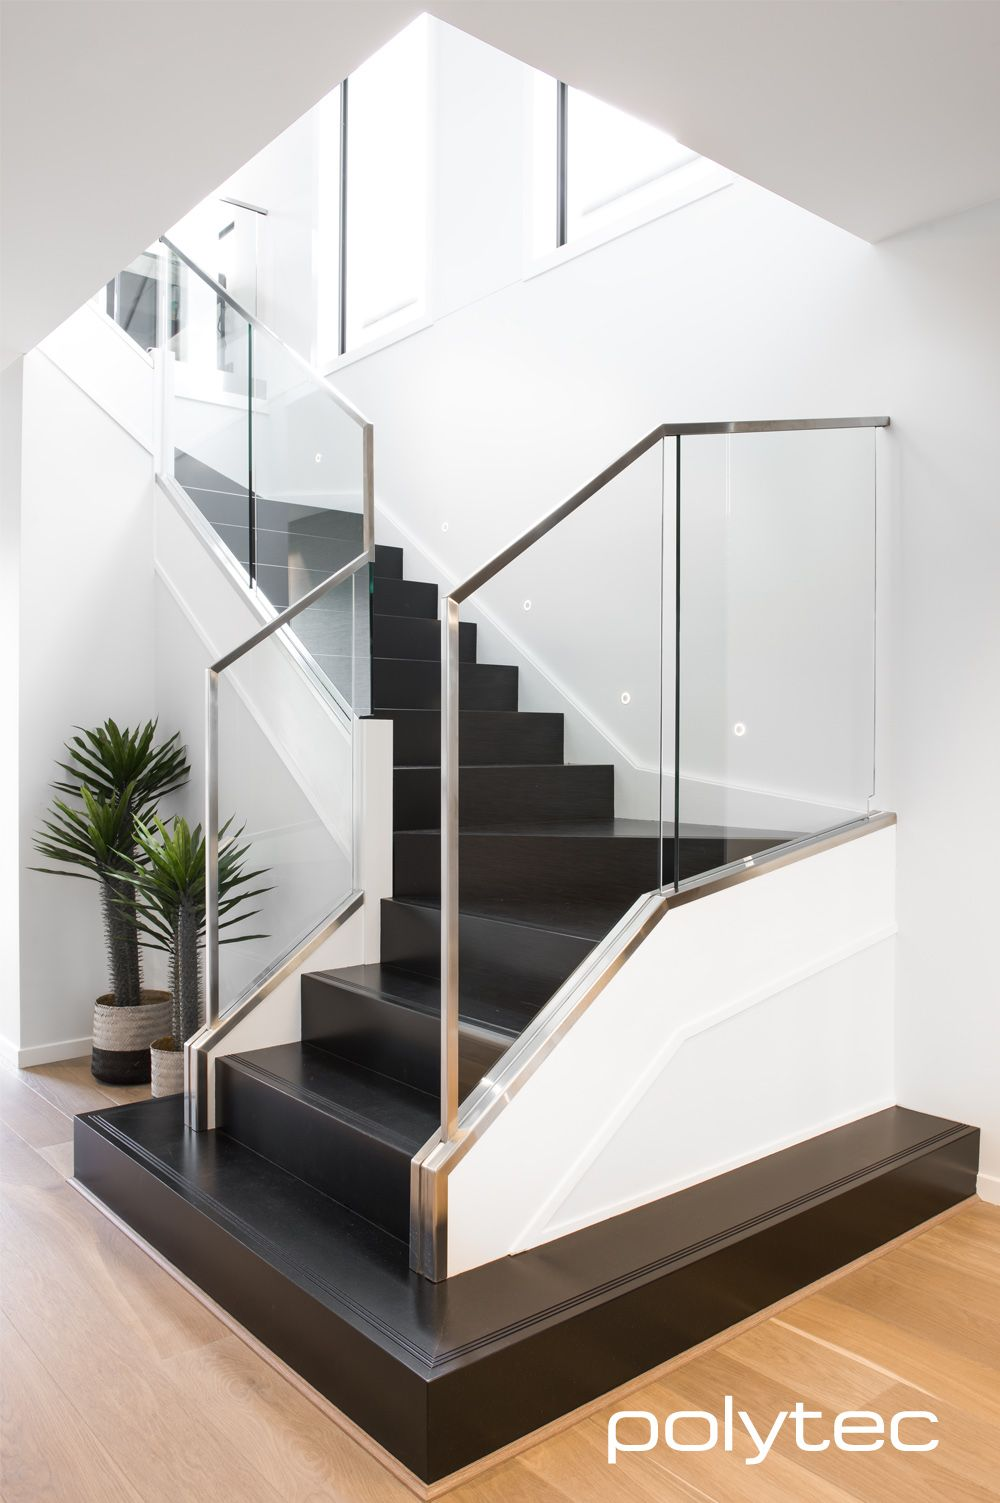 Finished Interior Designs In Kerala: Stylish Modern Stairs In Black Valchromat Finished With A